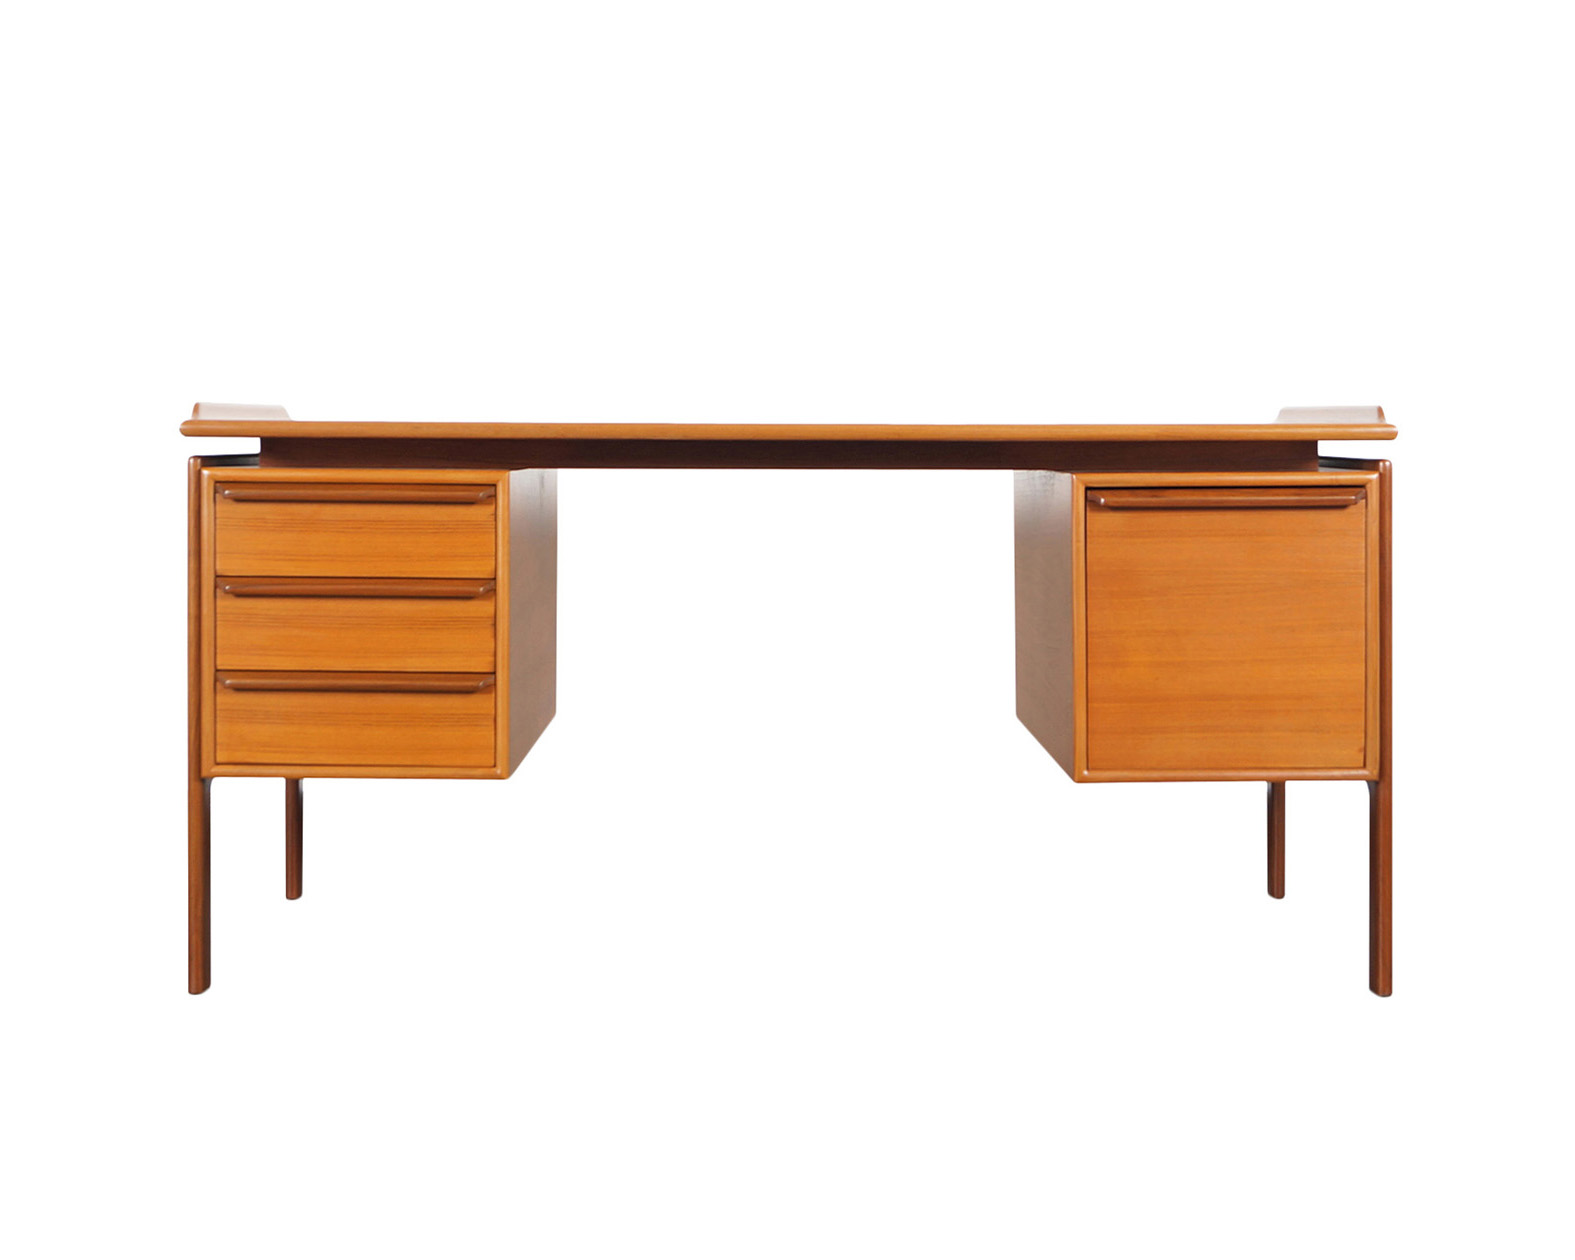 Danish Modern Teak Desk by G.V. Møbler